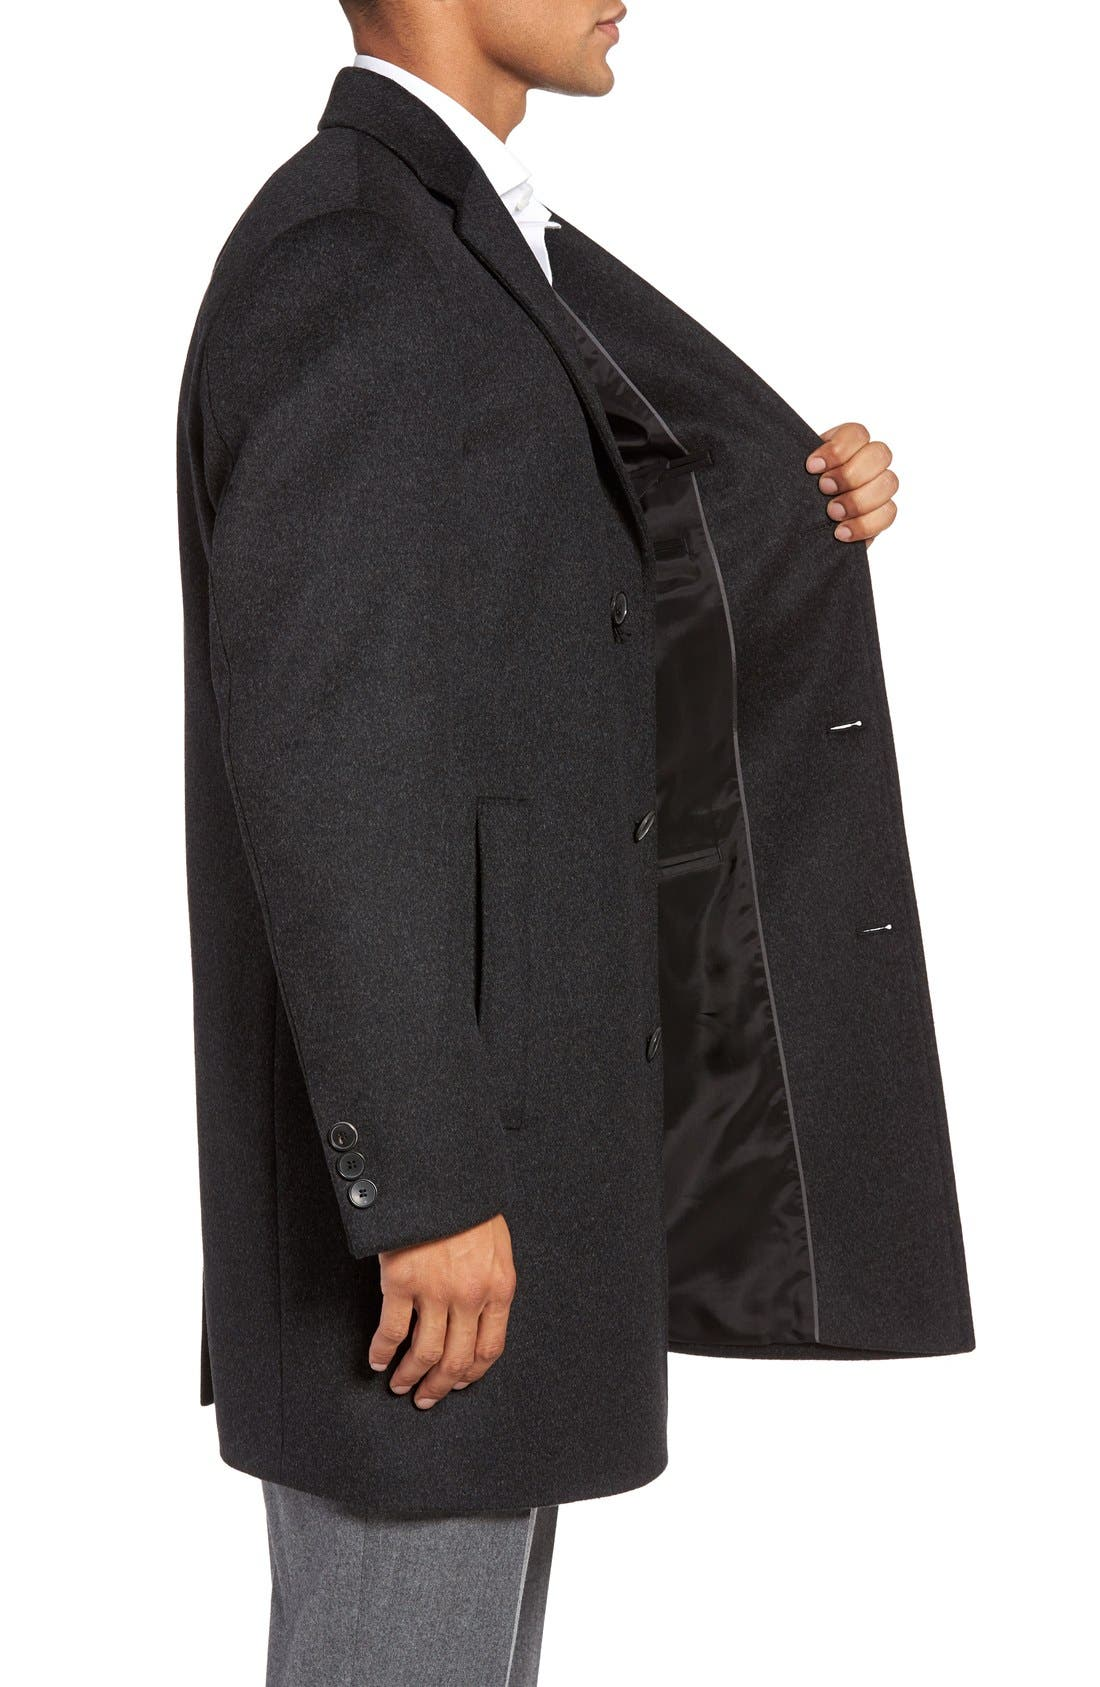 BOSS The Stratus Wool & Cashmere Overcoat,                             Alternate thumbnail 3, color,                             010